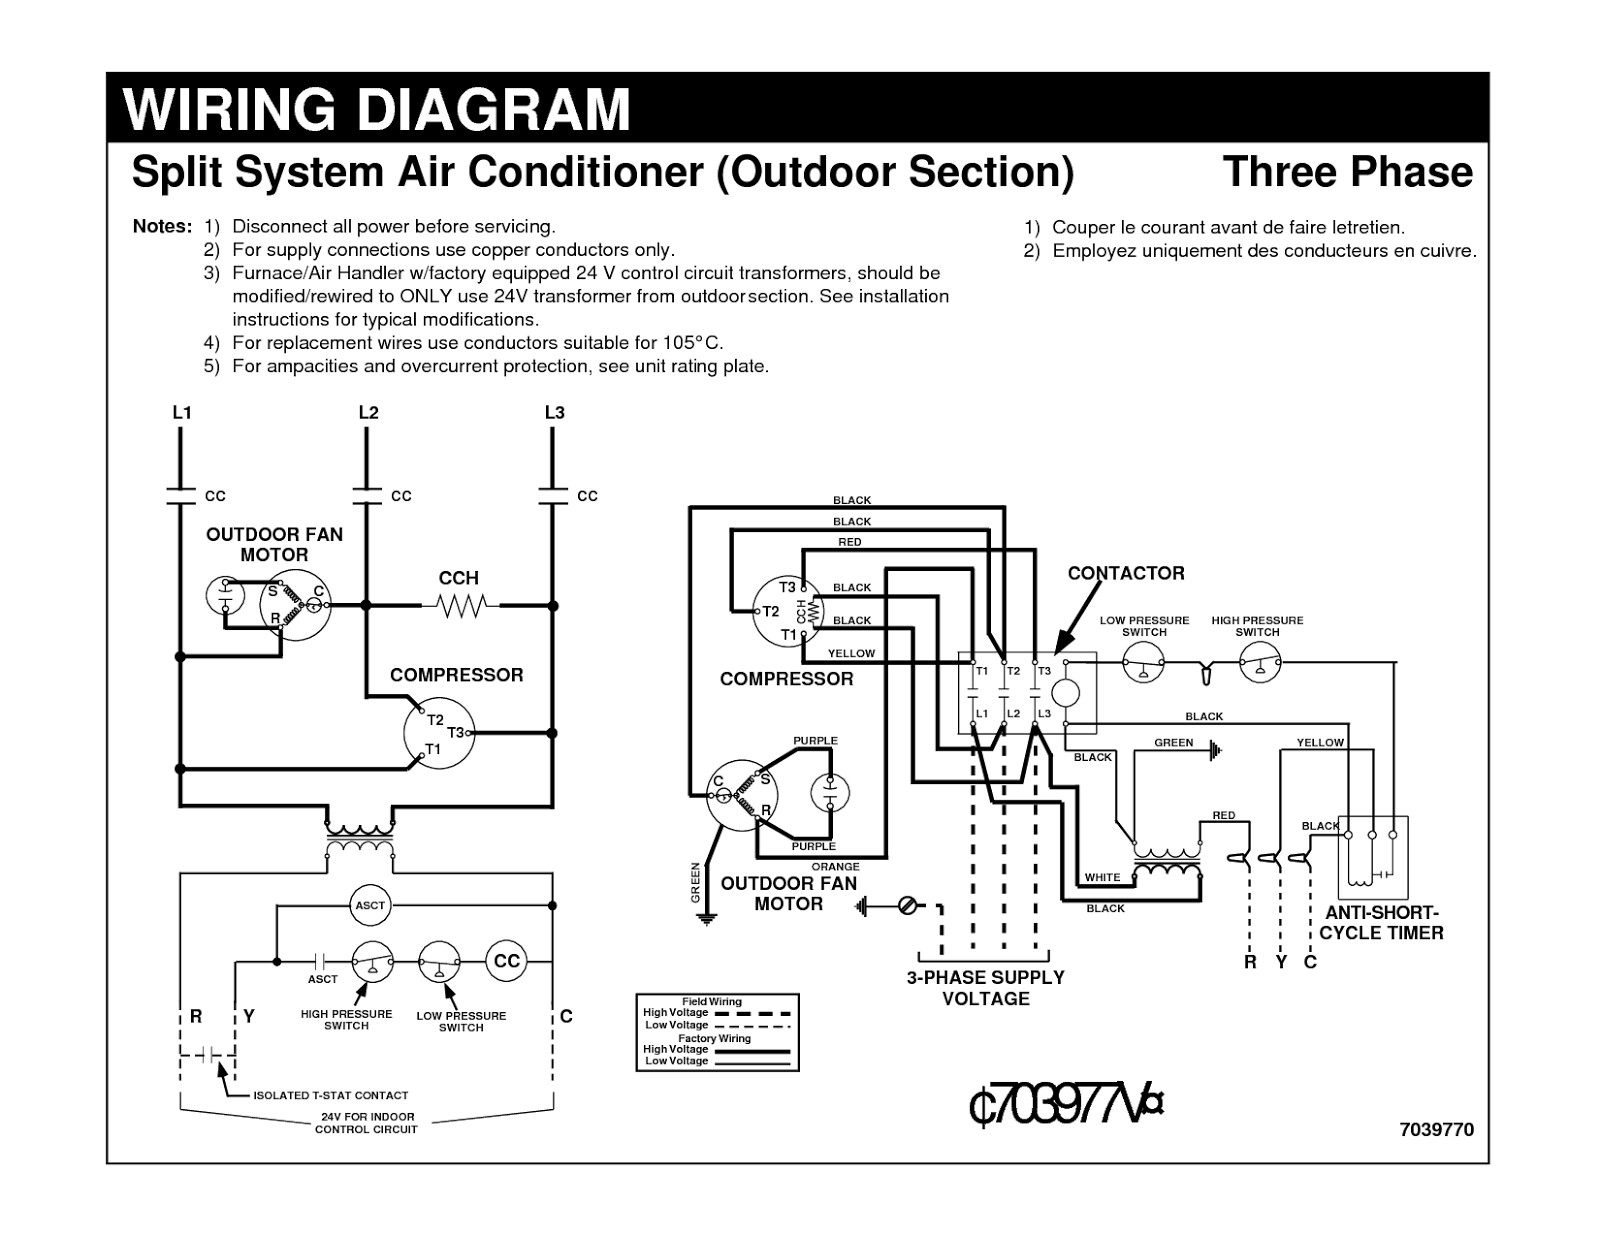 Electrical Wiring Diagram for Mm75 Air Compressor Of Ingersollrand Grafik Outside A C Condenser Unit Wiring Diagram Full Hd Of Electrical Wiring Diagram for Mm75 Air Compressor Of Ingersollrand